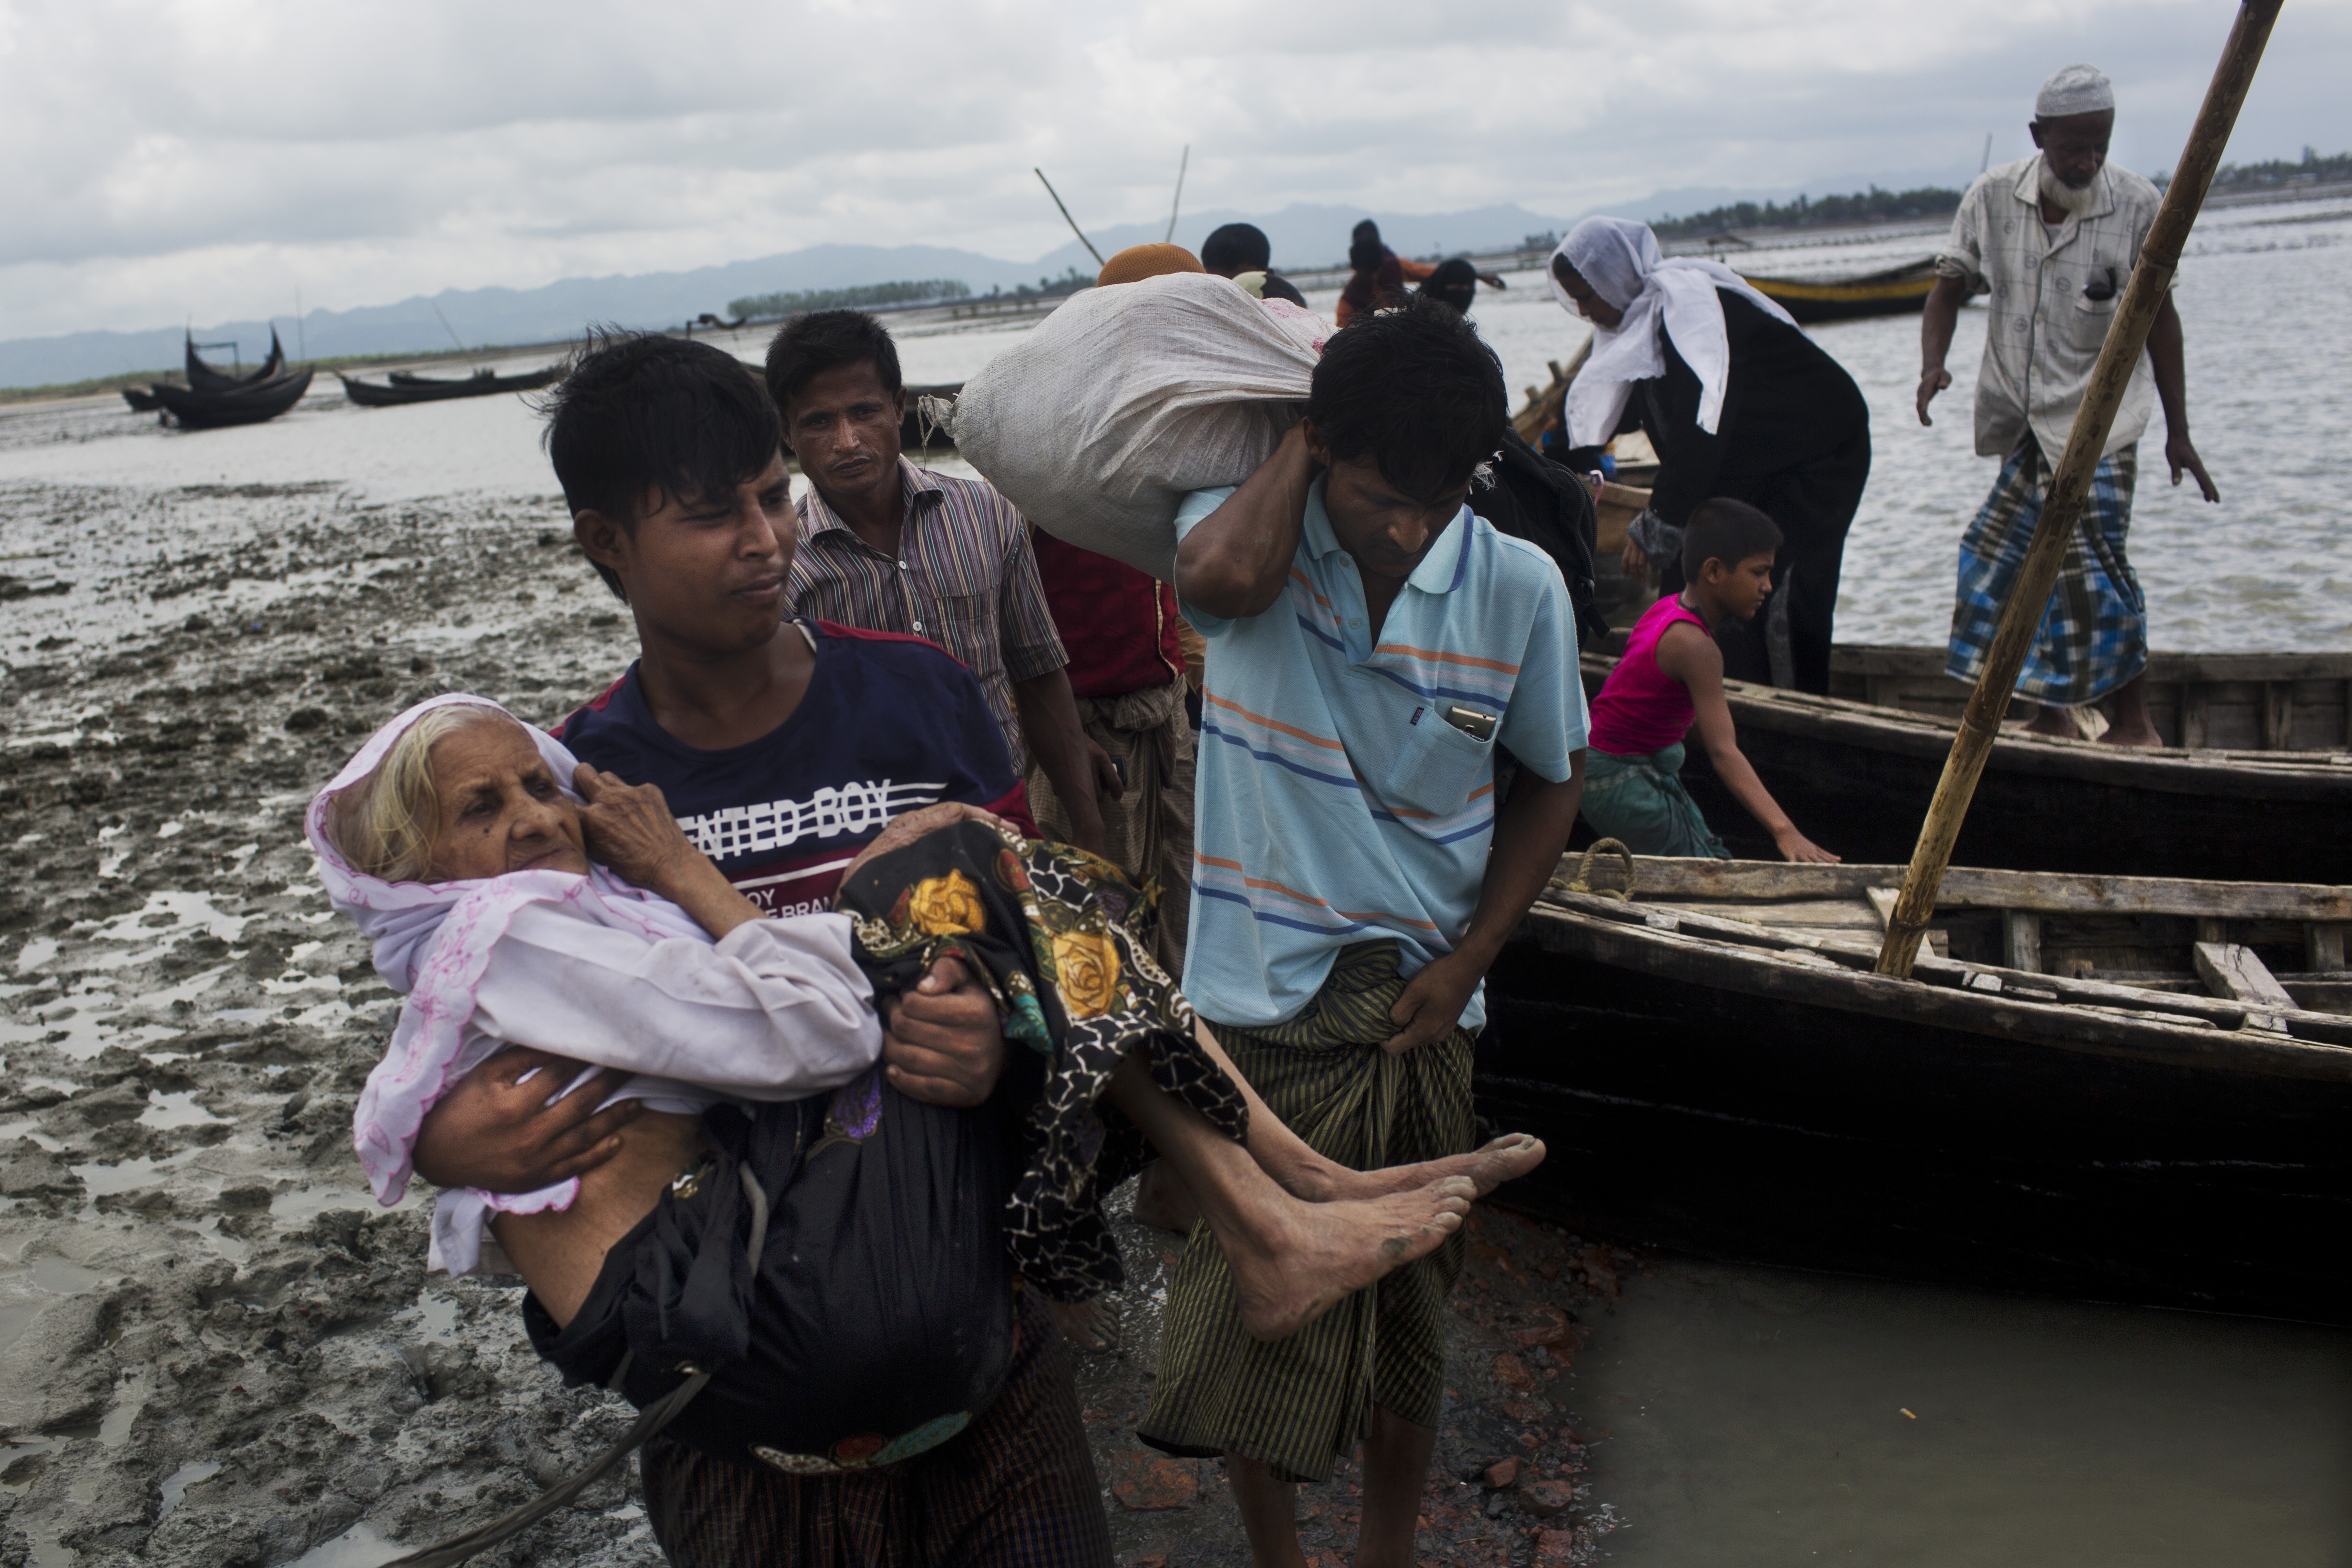 A Rohingya ethnic minority from Myanmar carries an elderly woman as they alight from a local boat on which they crossed a river, after crossing over to the Bangladesh side of the border near Cox's Bazar's Dakhinpara area, Sept. 2, 2017.